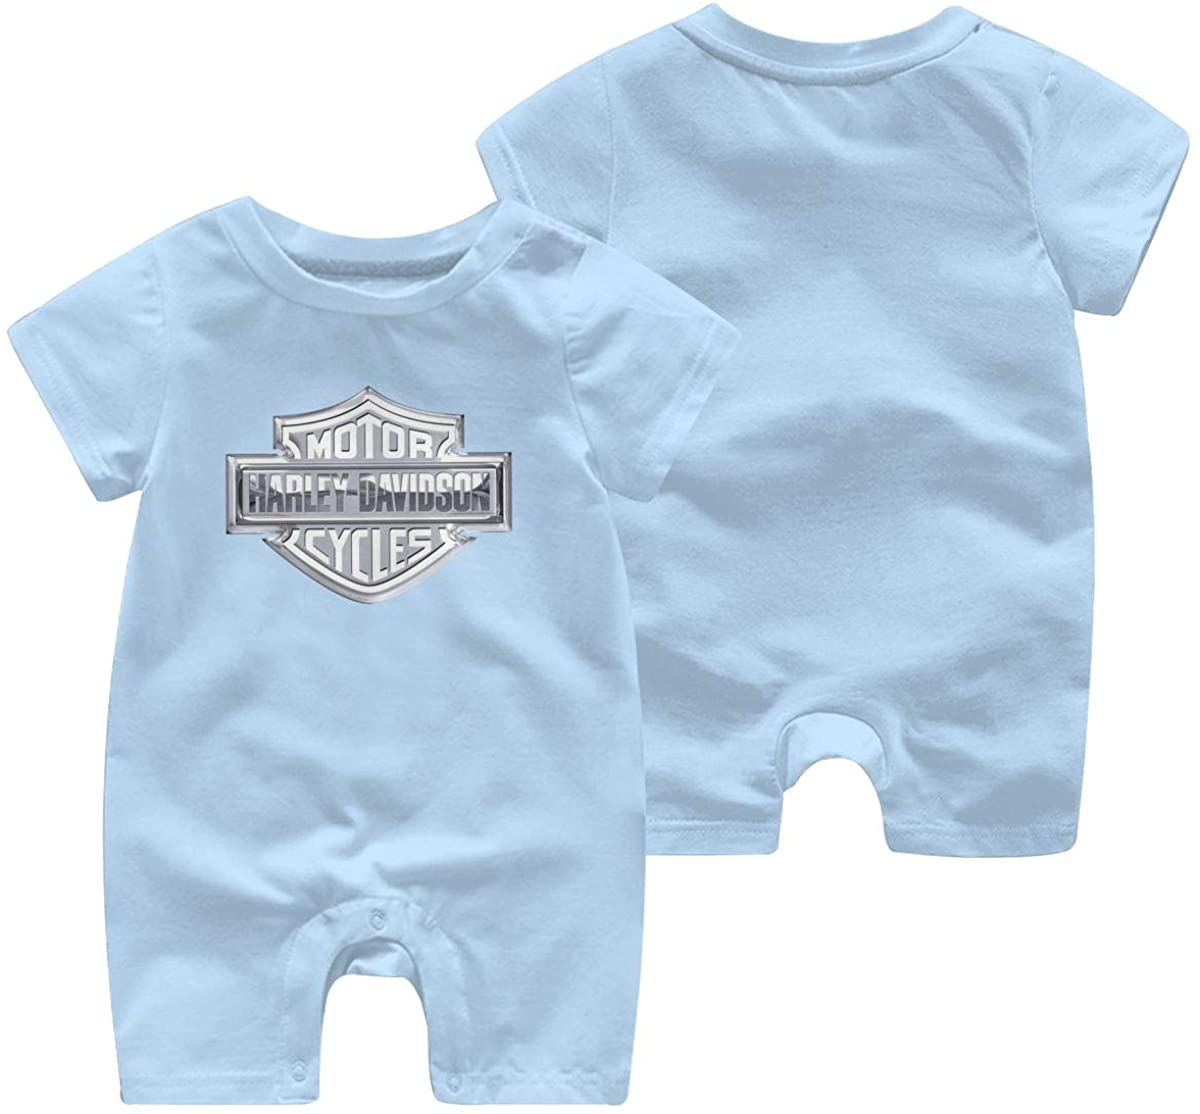 Harley Davidson One Piece Outfits Baby Solid Color Rompers with Button Kids Short Sleeve Playsuit Jumpsuits Cotton Clothing 12 Months Sky Blue